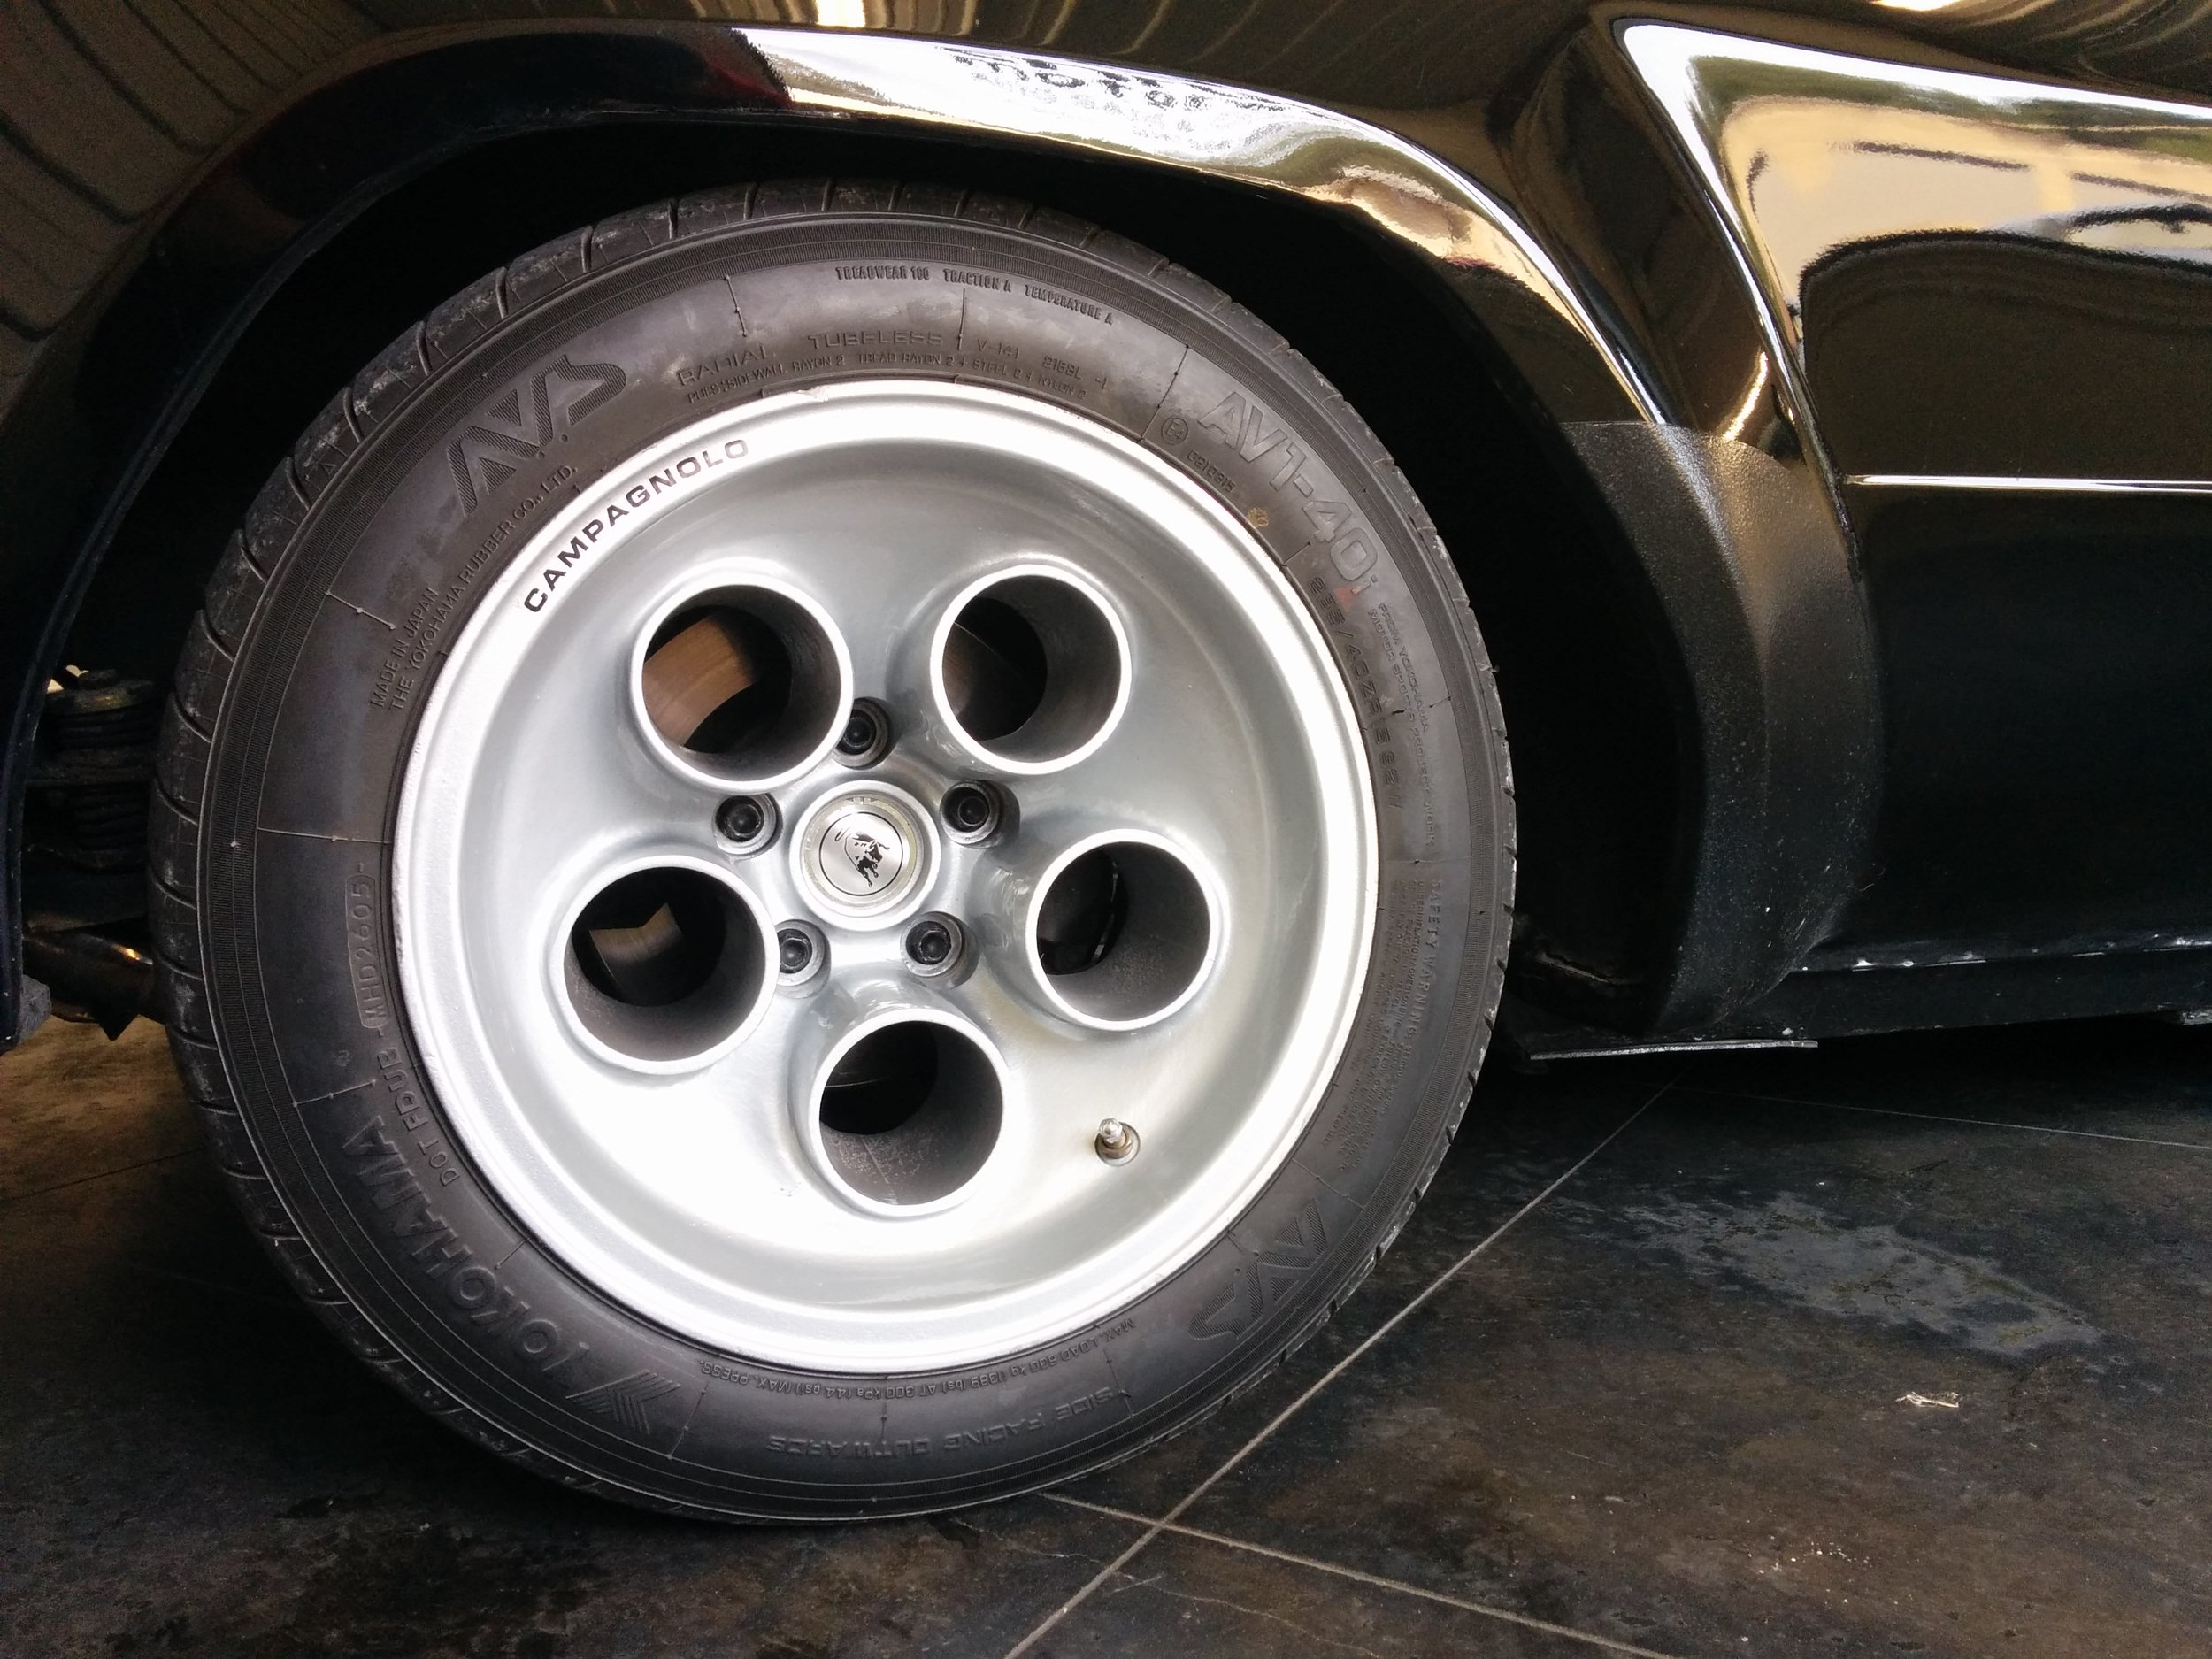 The recessed logo makes great use of the rear wheel's wider footprint.